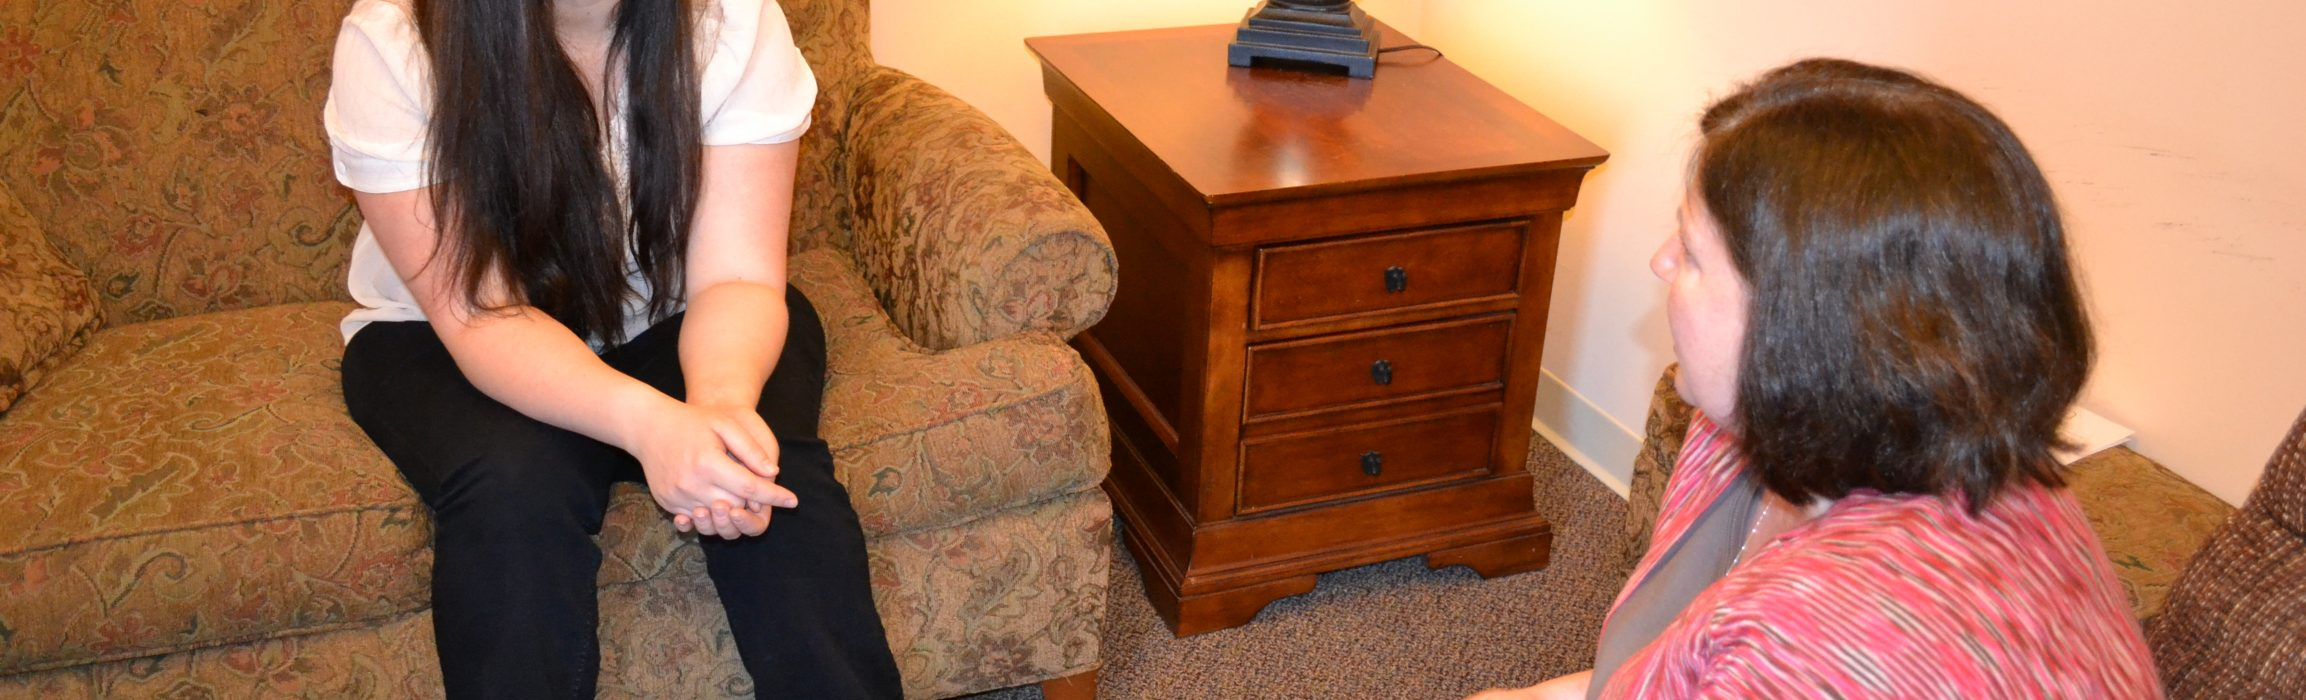 fort deposit catholic single women Snap fort wright 3102 w fort george  housing counseling, foreclosure prevention, the business center, women's business center  contact us search.